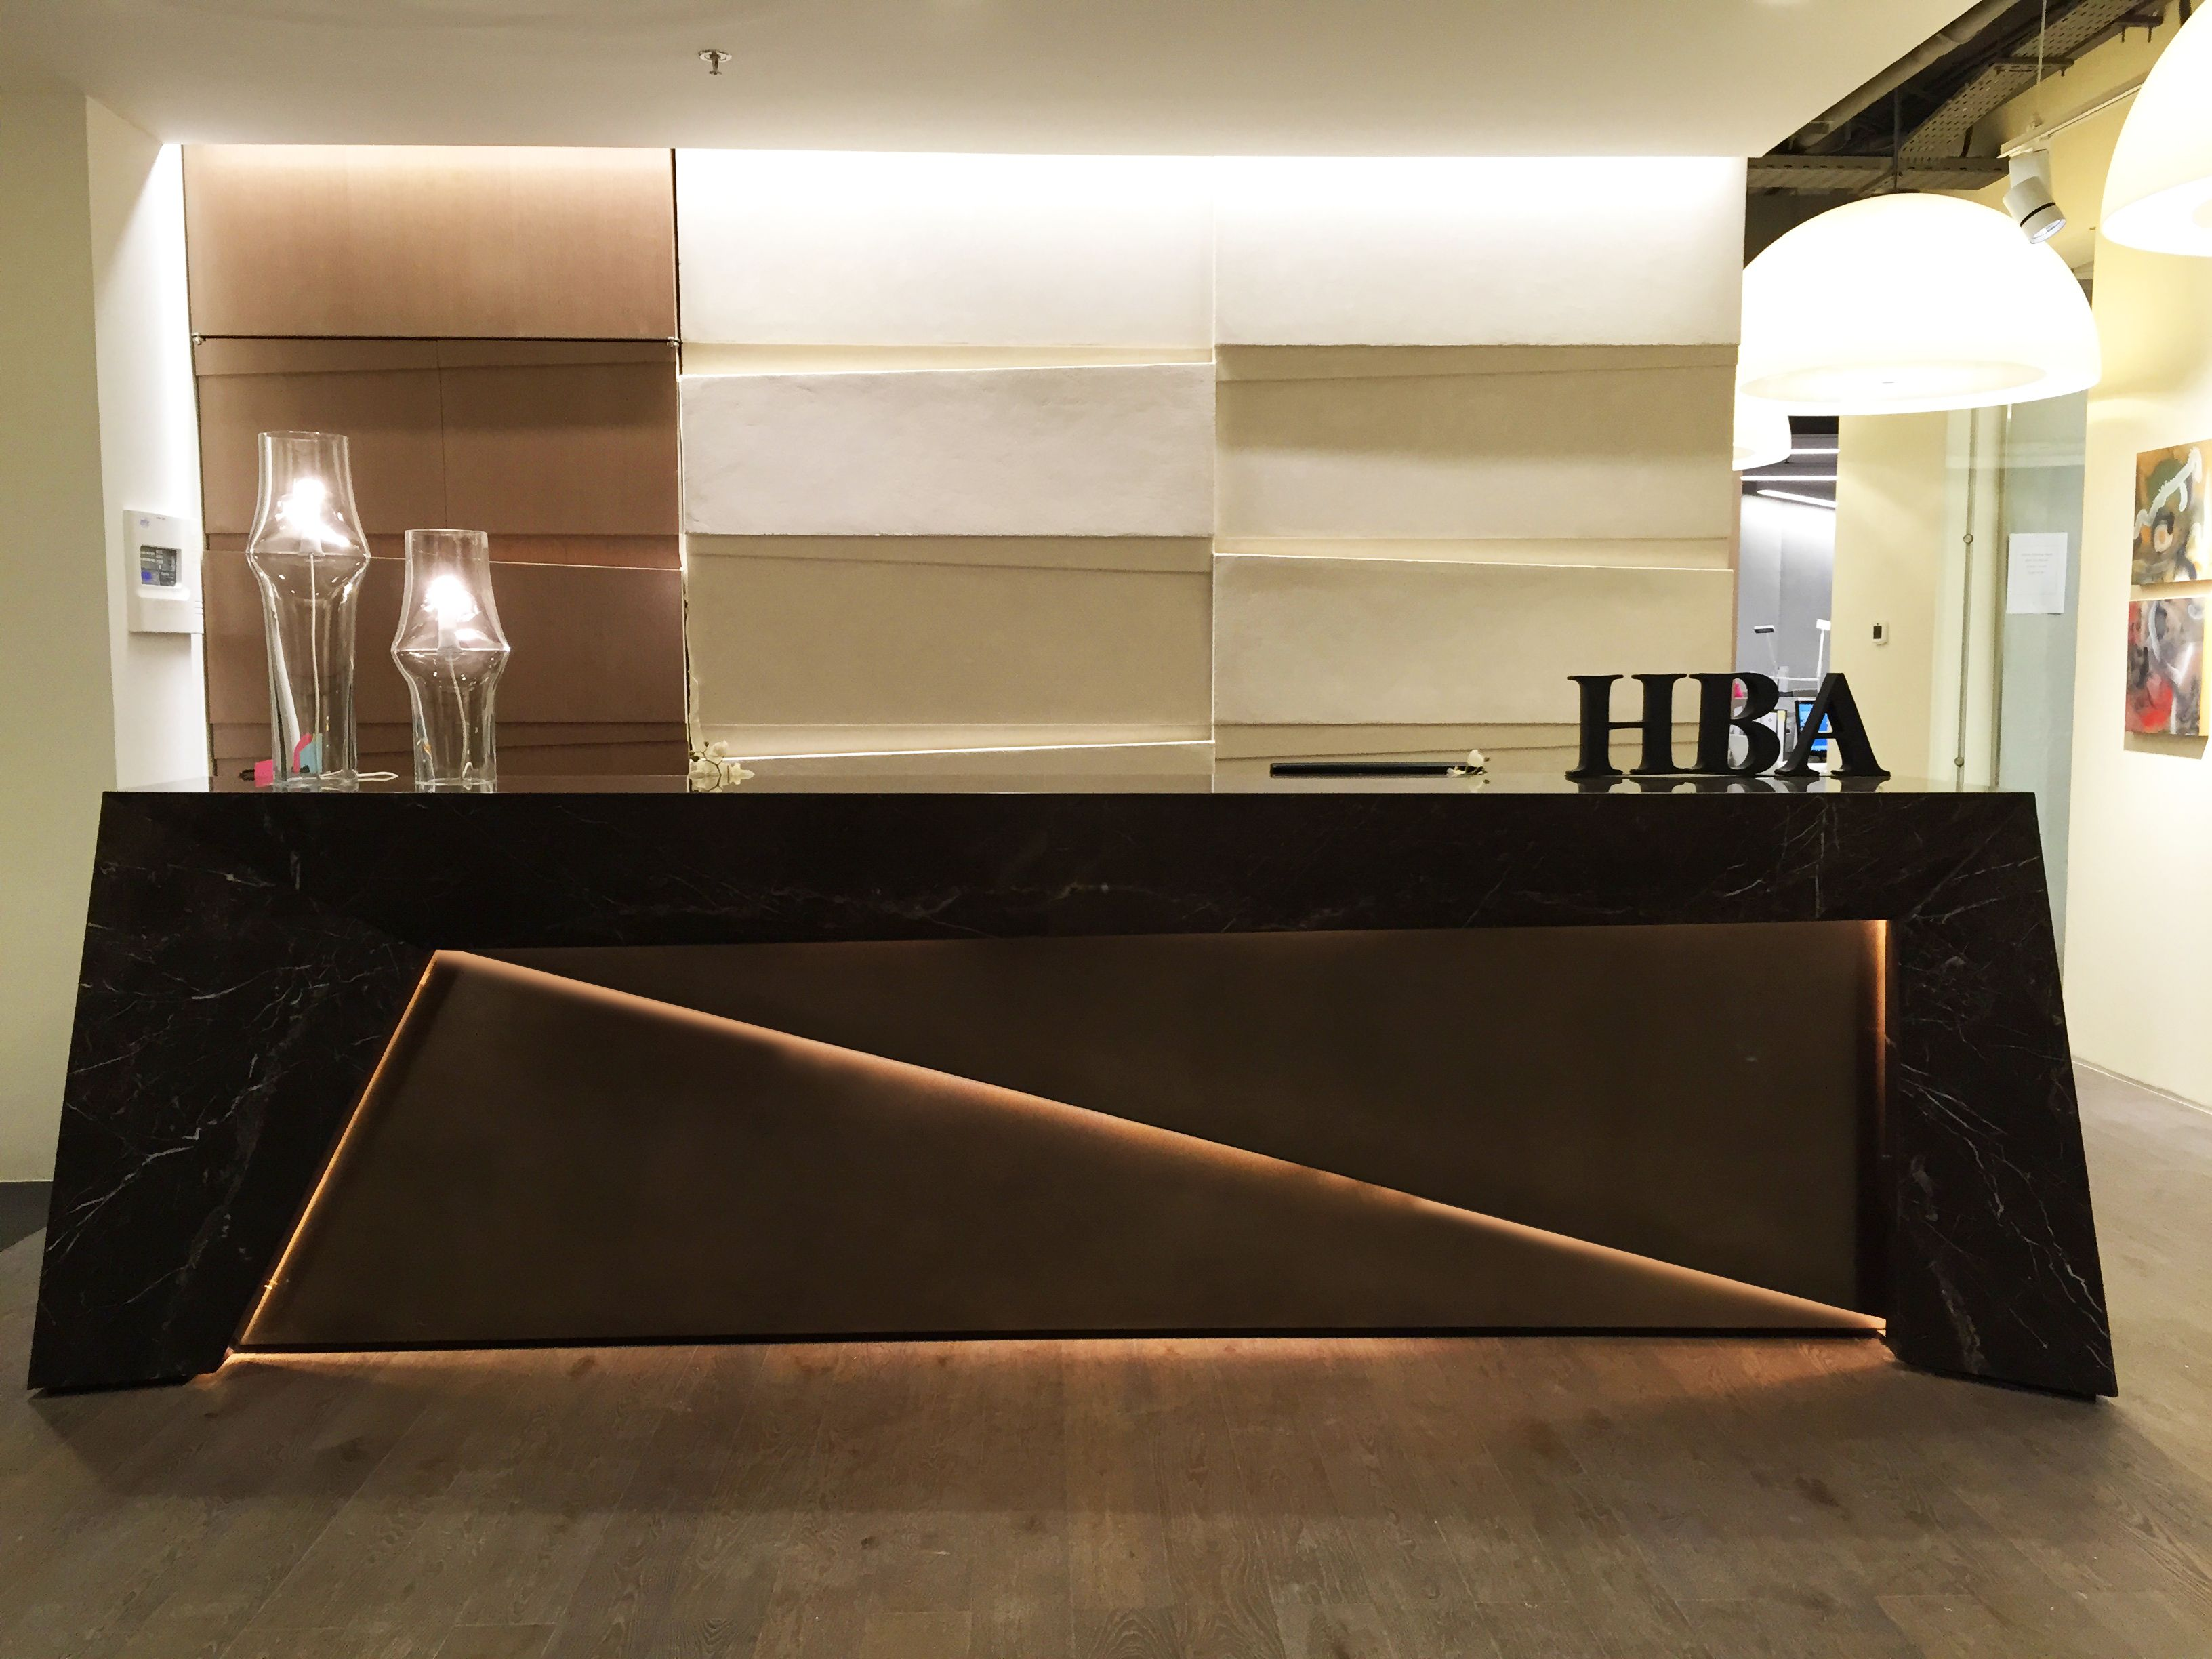 Hba dubai office reception desk and walls design by me for Office counter design